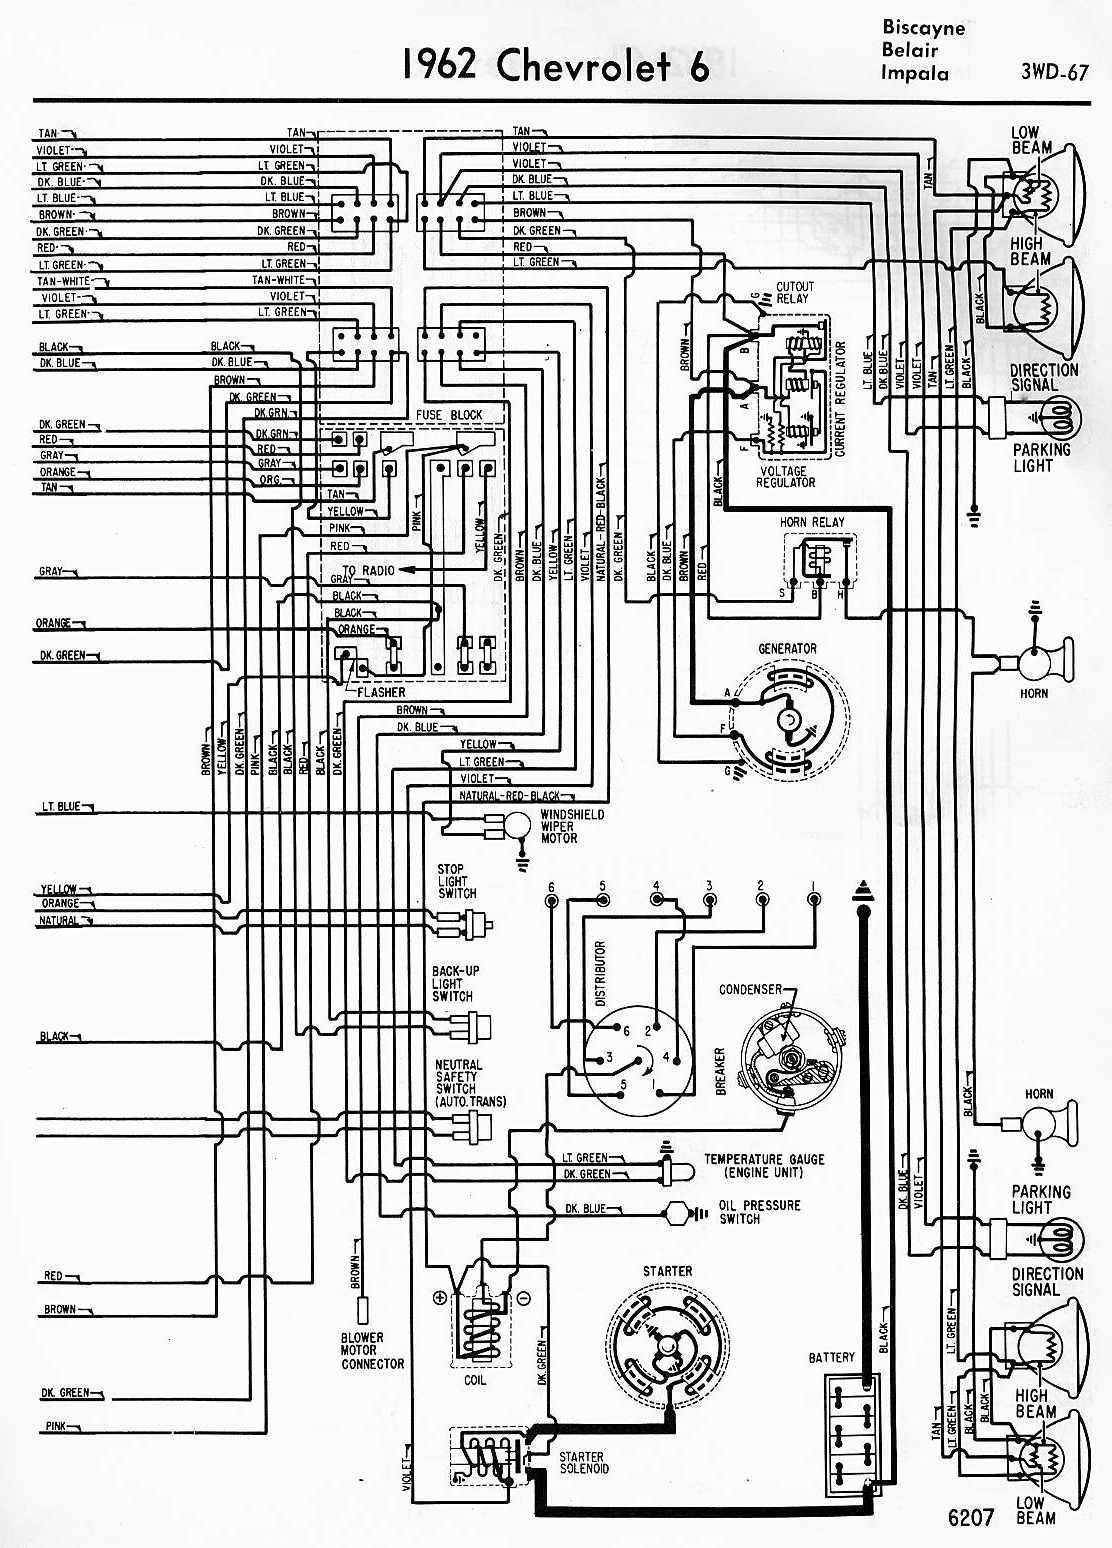 Ford Fairmont Blower Motor Wiring Diagram Diy Enthusiasts 1998 S10 Fine El Falcon Inspiration Best Images For Rh Oursweetbakeshop Info Resistor